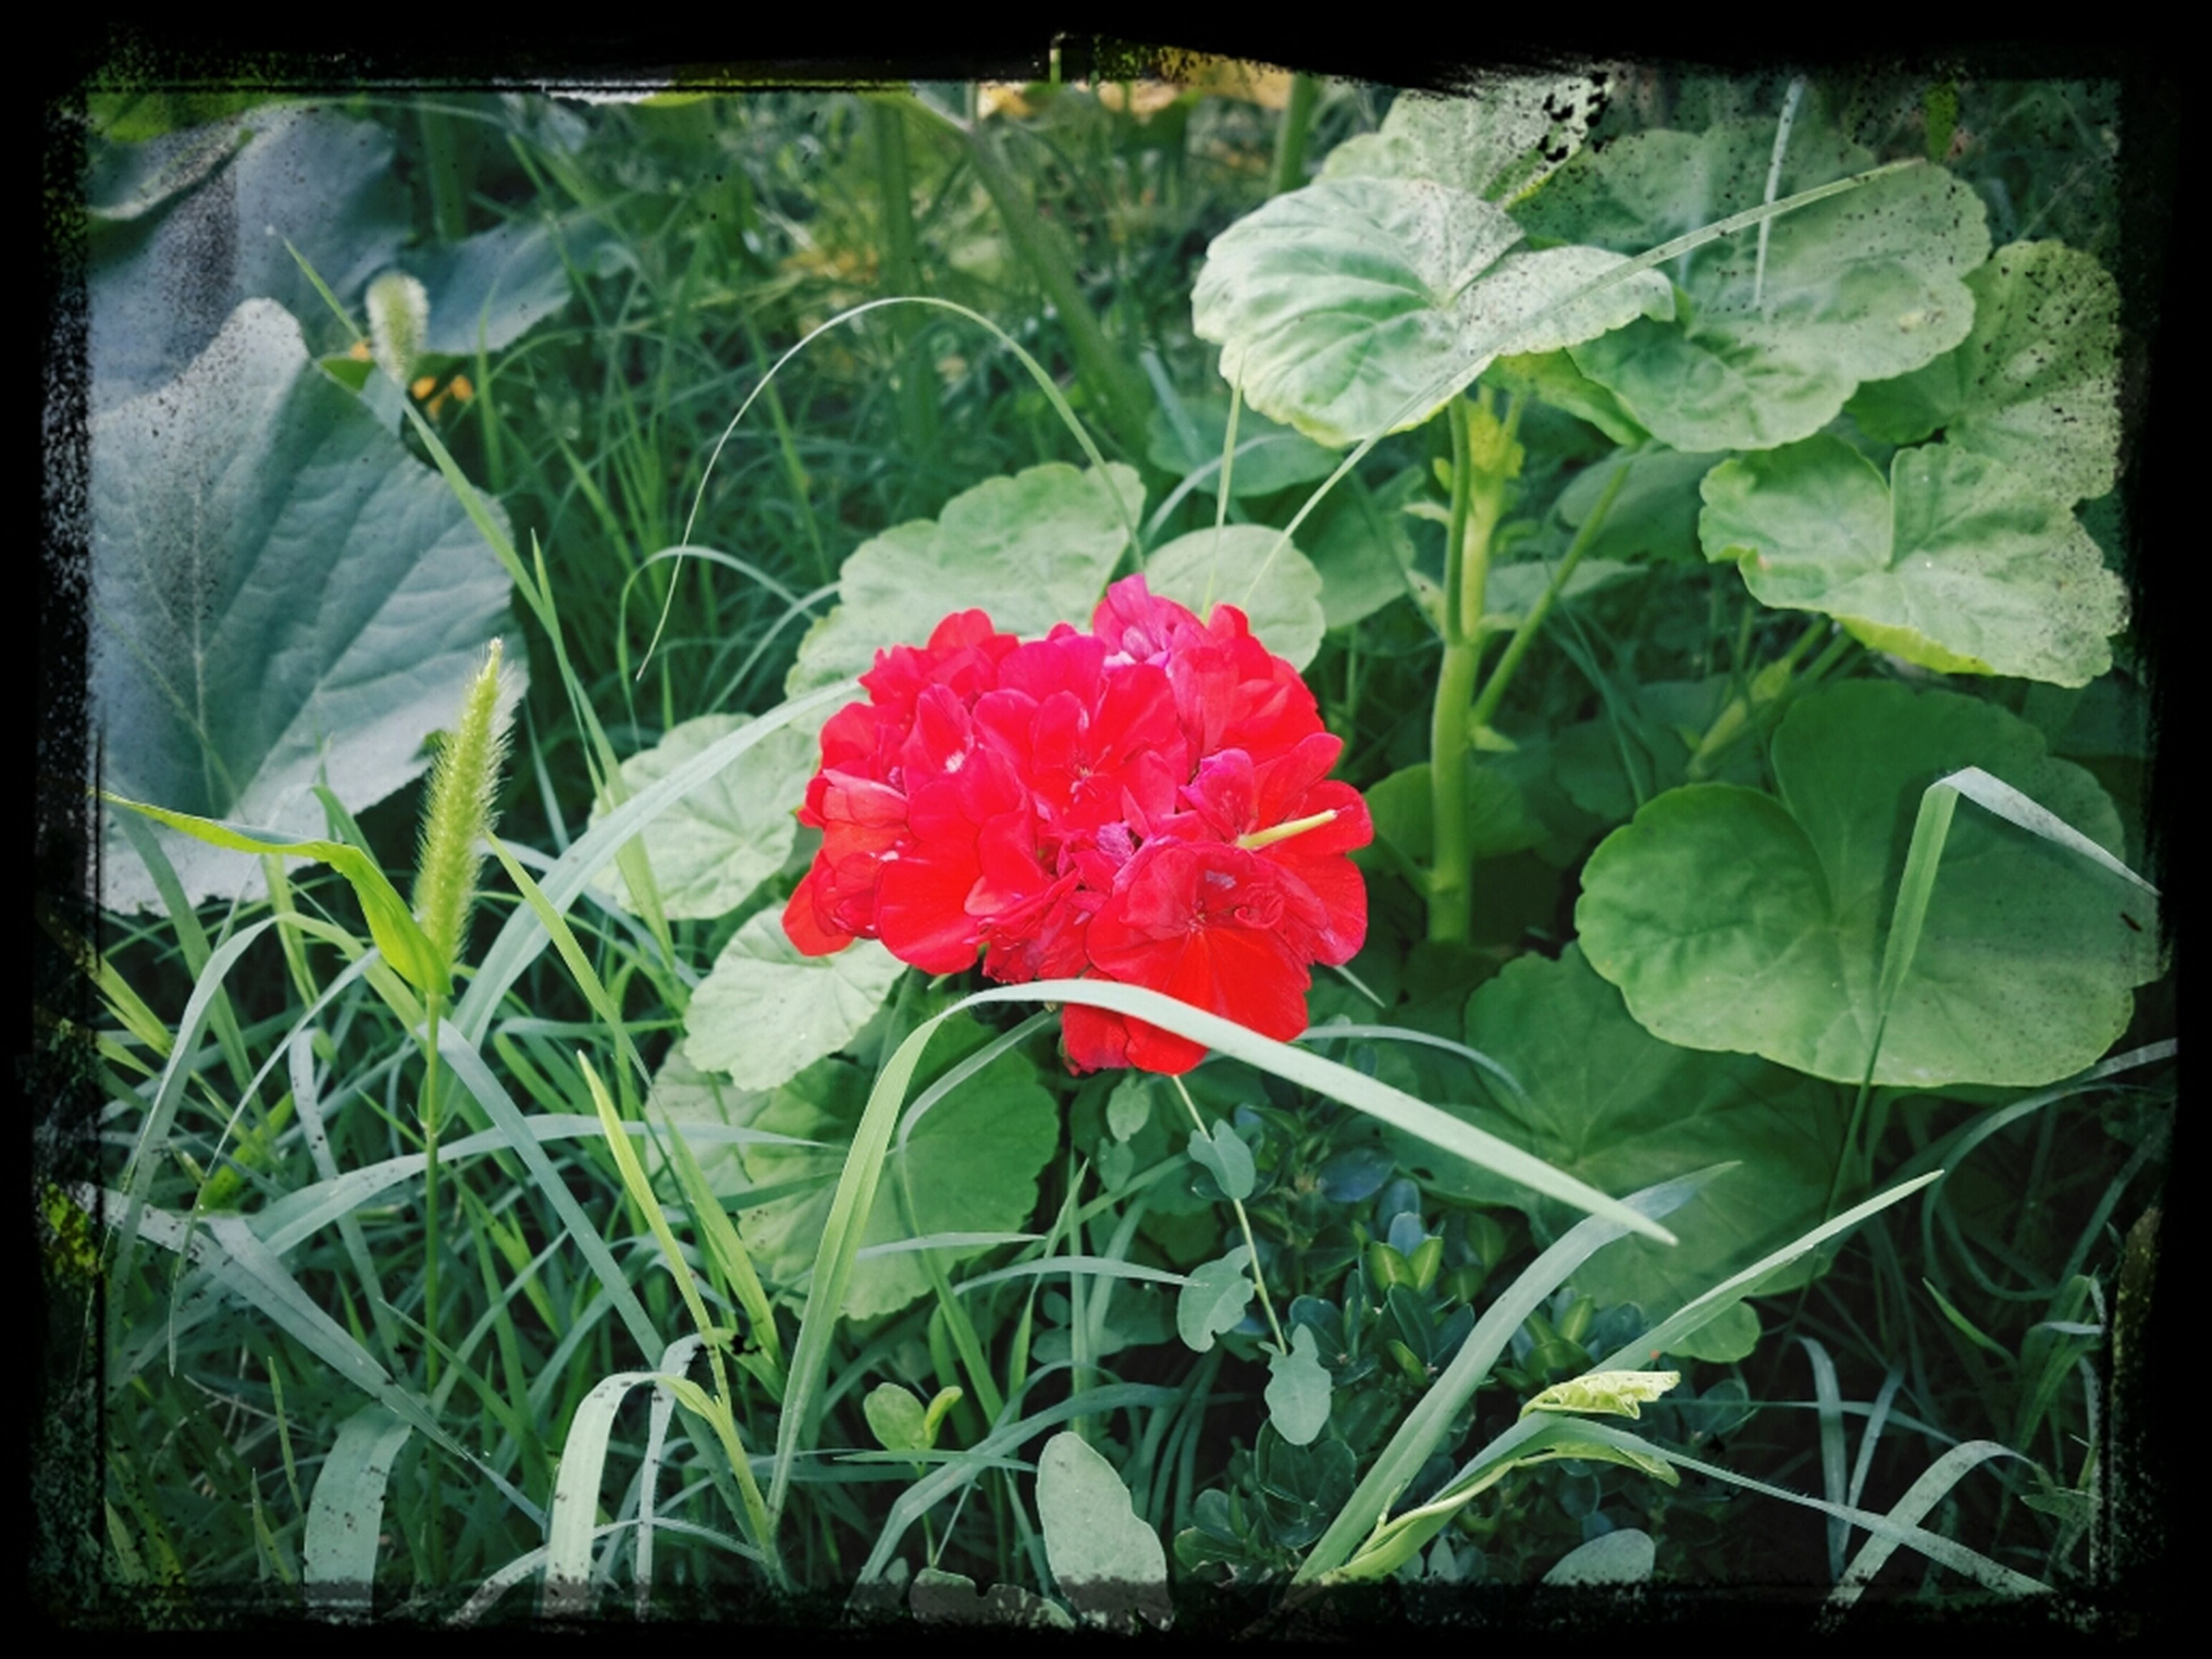 flower, transfer print, freshness, petal, growth, fragility, flower head, red, leaf, plant, beauty in nature, auto post production filter, blooming, nature, close-up, green color, single flower, in bloom, focus on foreground, field